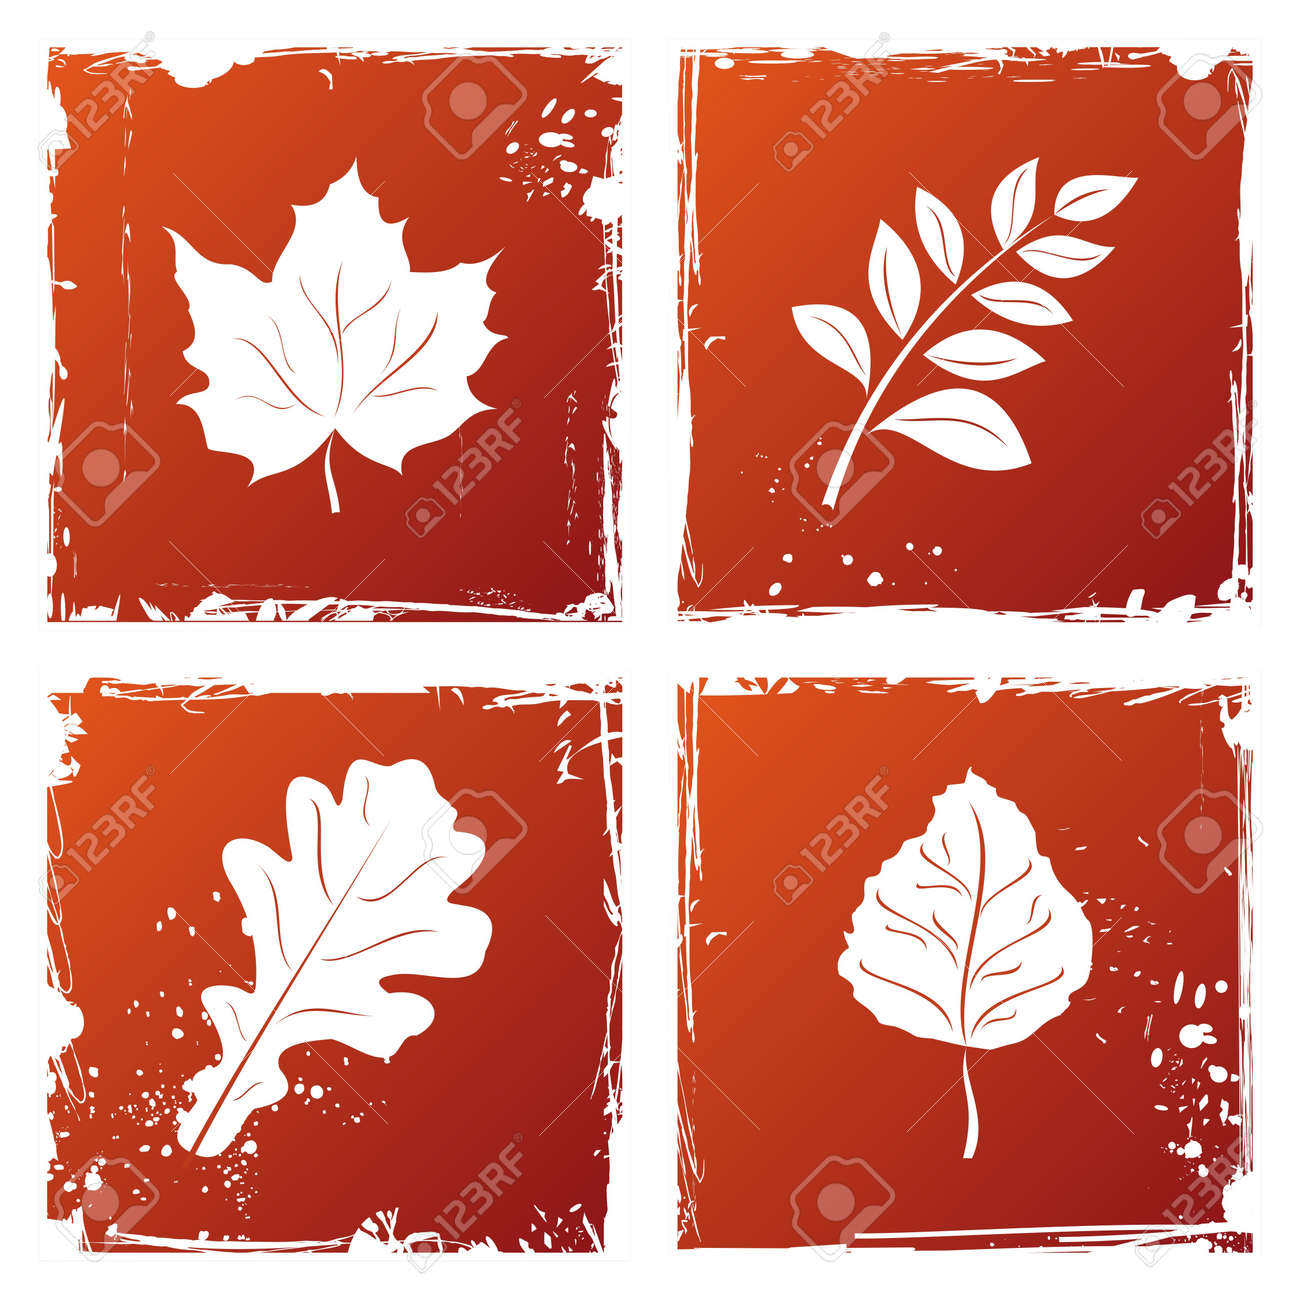 Set of grunge autumn leaves. Stock Vector - 7852120